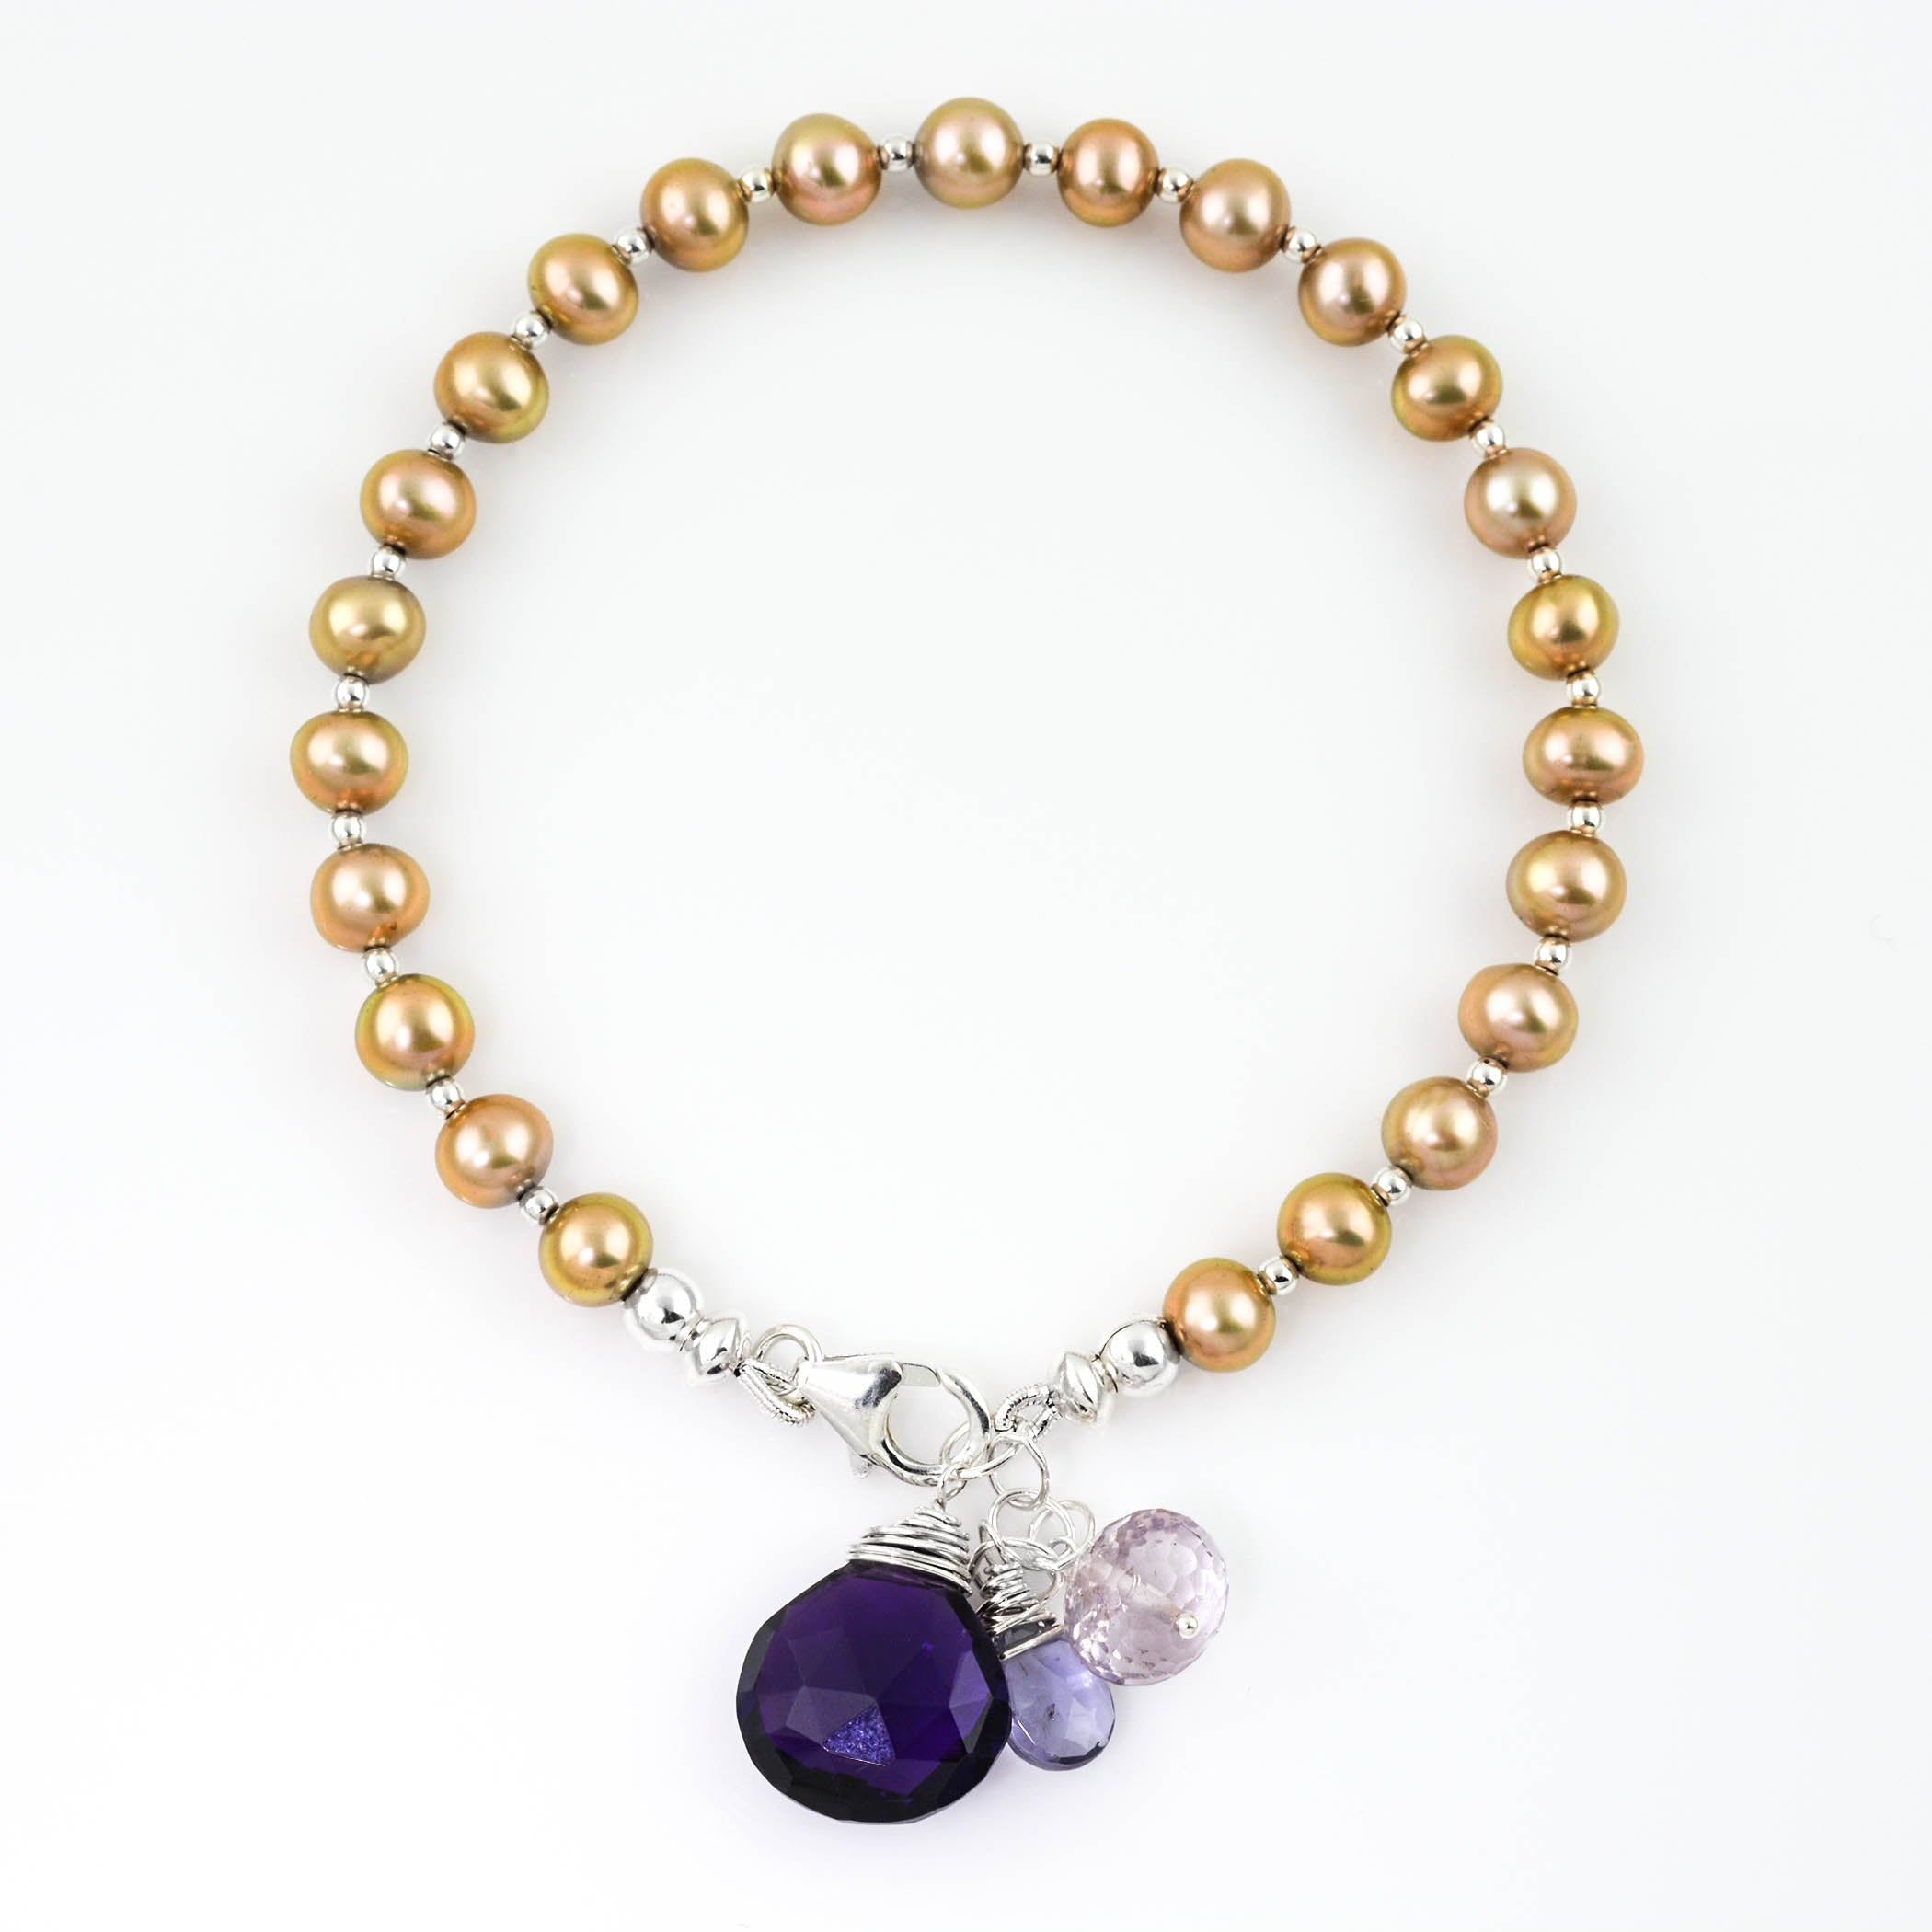 silk seenbymarinainternational bracelet n seen by international marina freshwater silkn pearl tictail